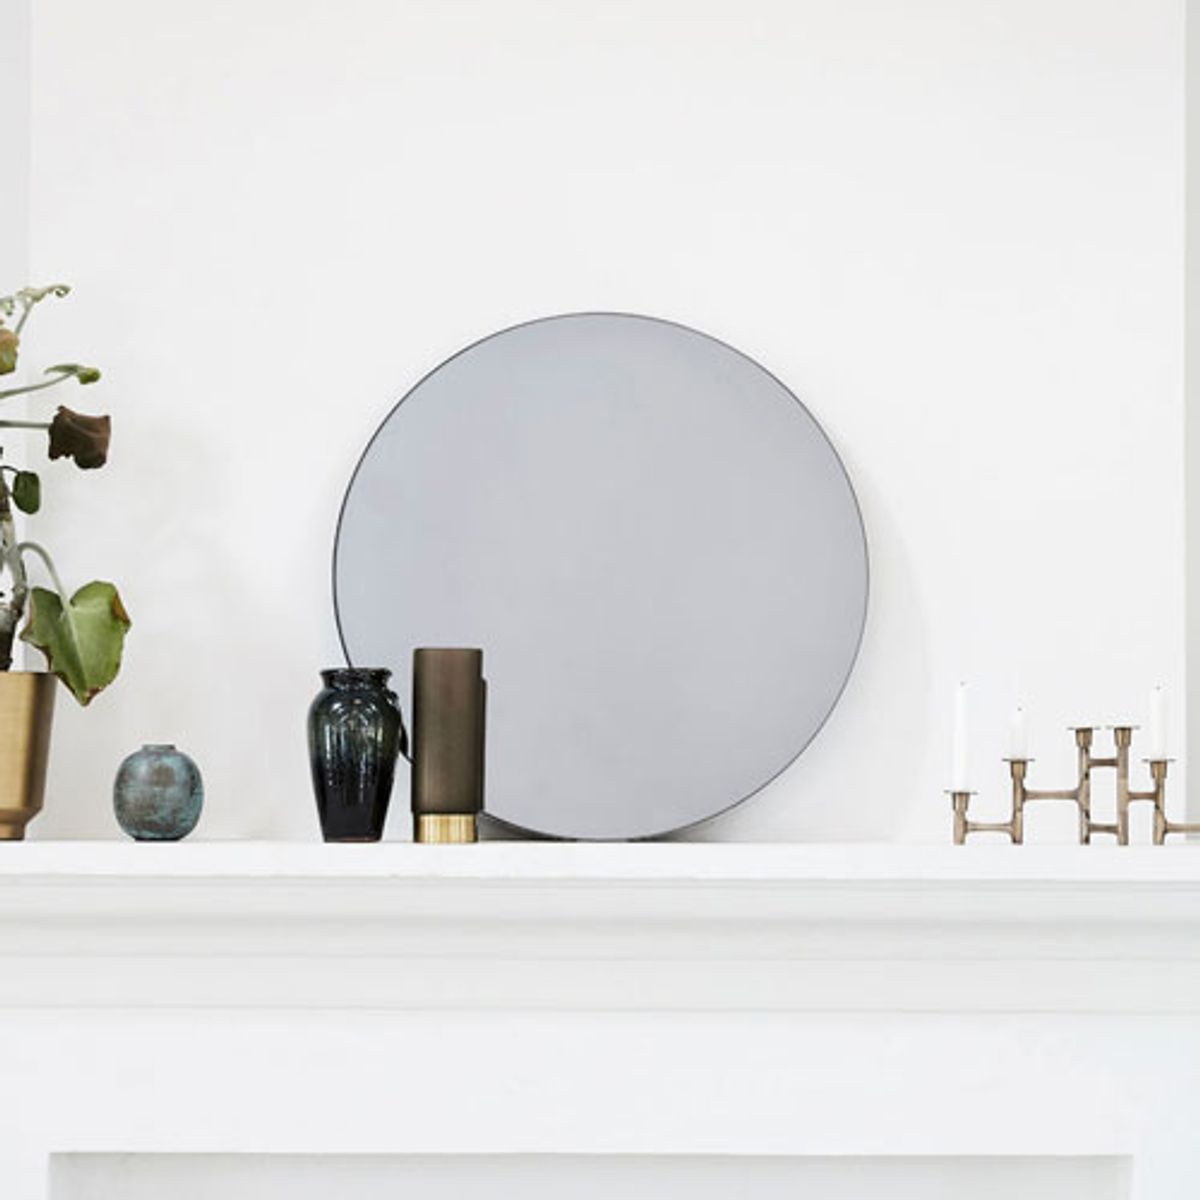 Miroir rond en verre gris d50 cm walls house doctor for Miroir house doctor